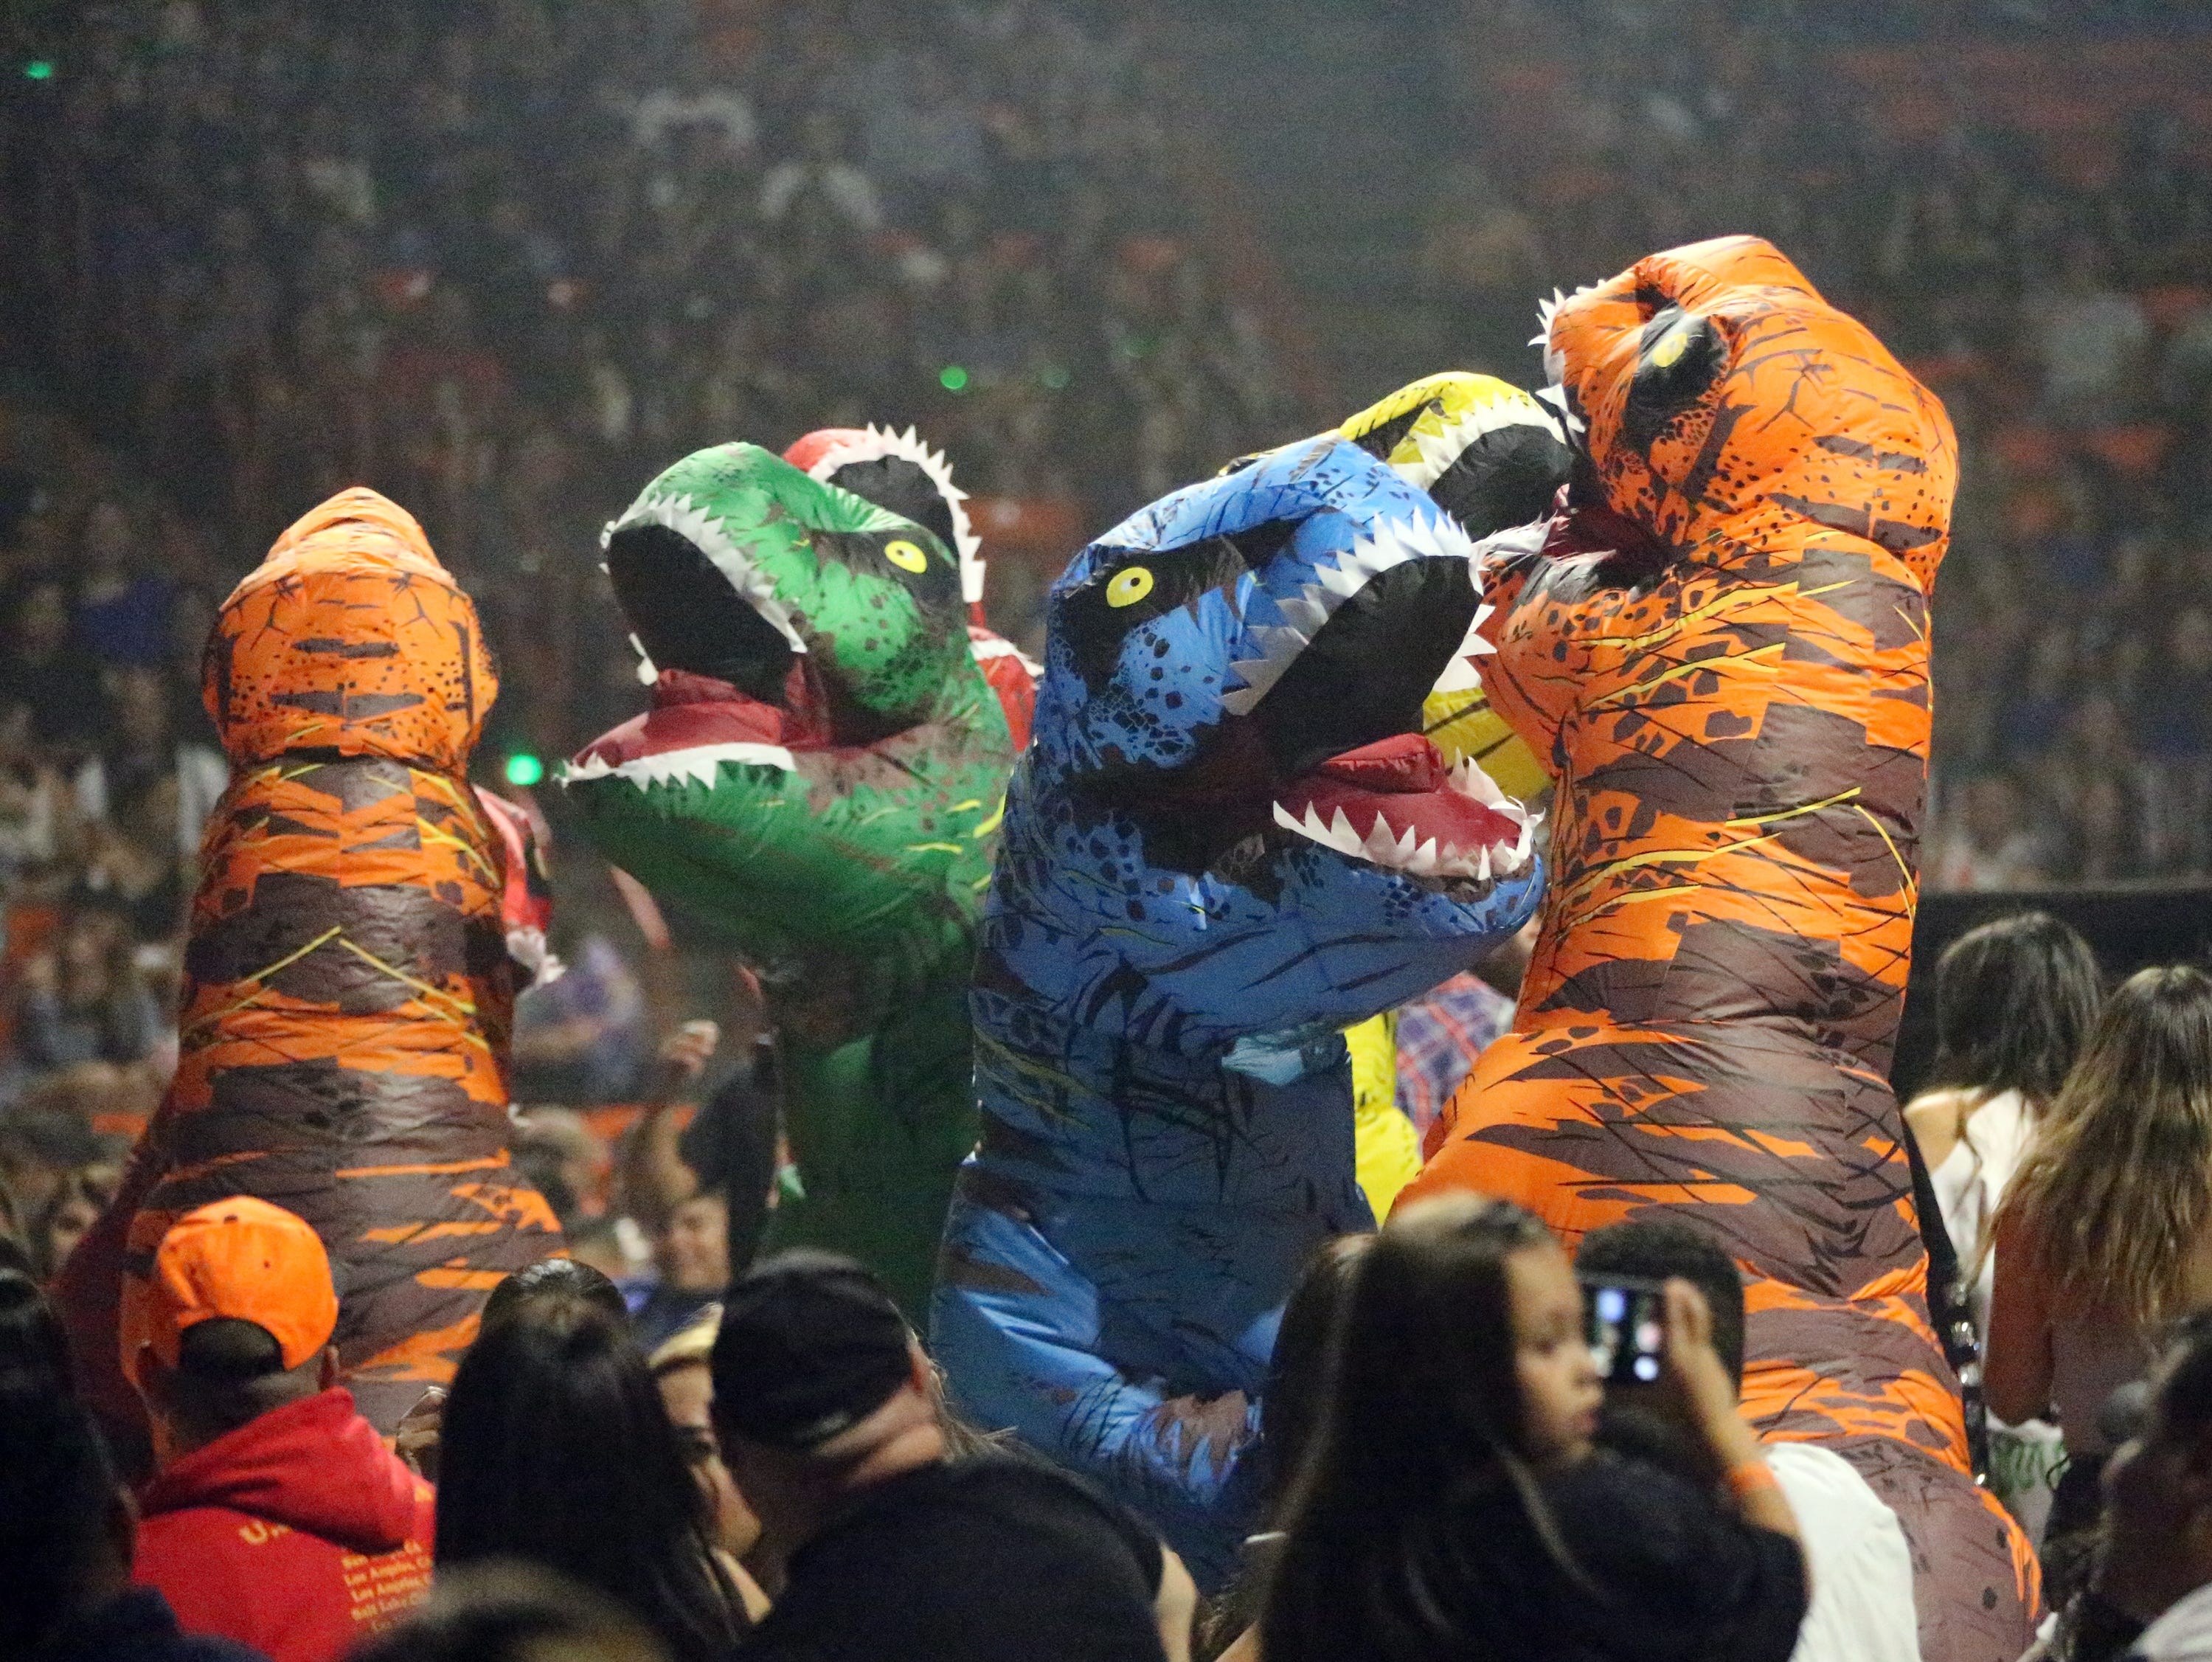 Dinosaurs ruled the floor of the Don Haskins Center prior to the start of the J Balvin show Sunday night.